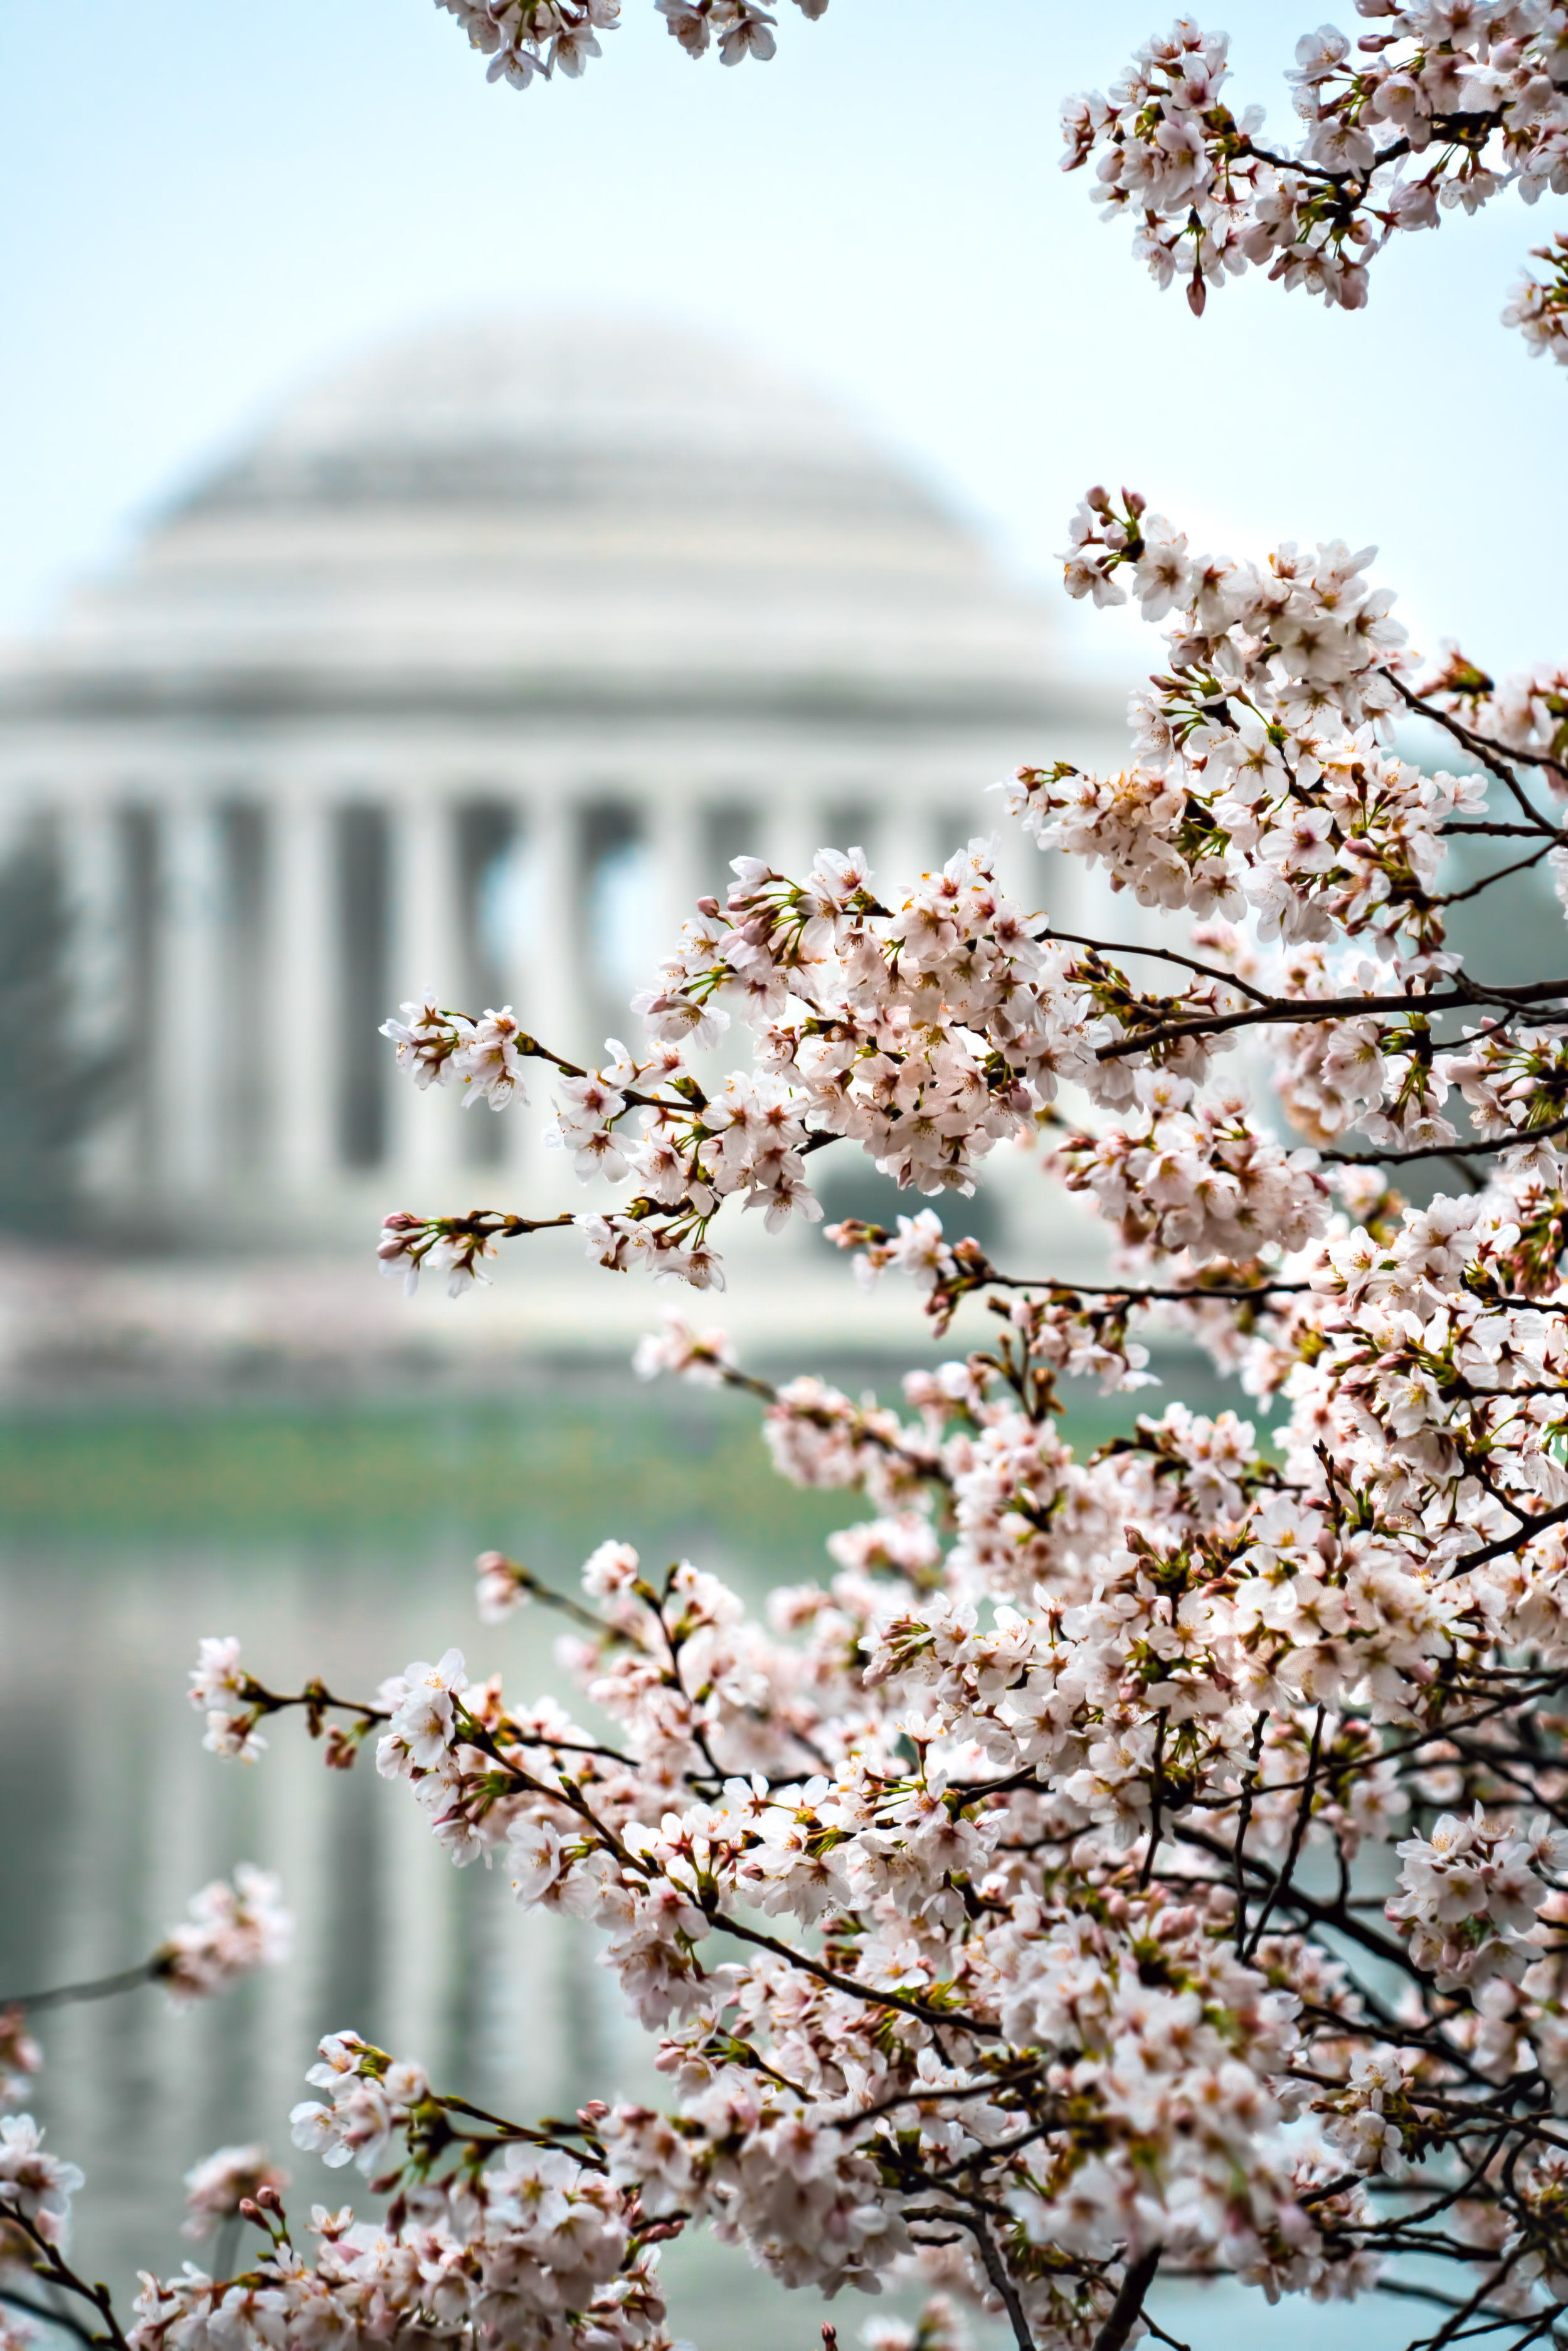 I really love this shot of the Cherry blossoms with the Jefferson Memorial compressed in the background and the only way to accomplish that was to step back and zoom in. #Sony A7RM2, F/6.3, 1/100th, ISO 400.